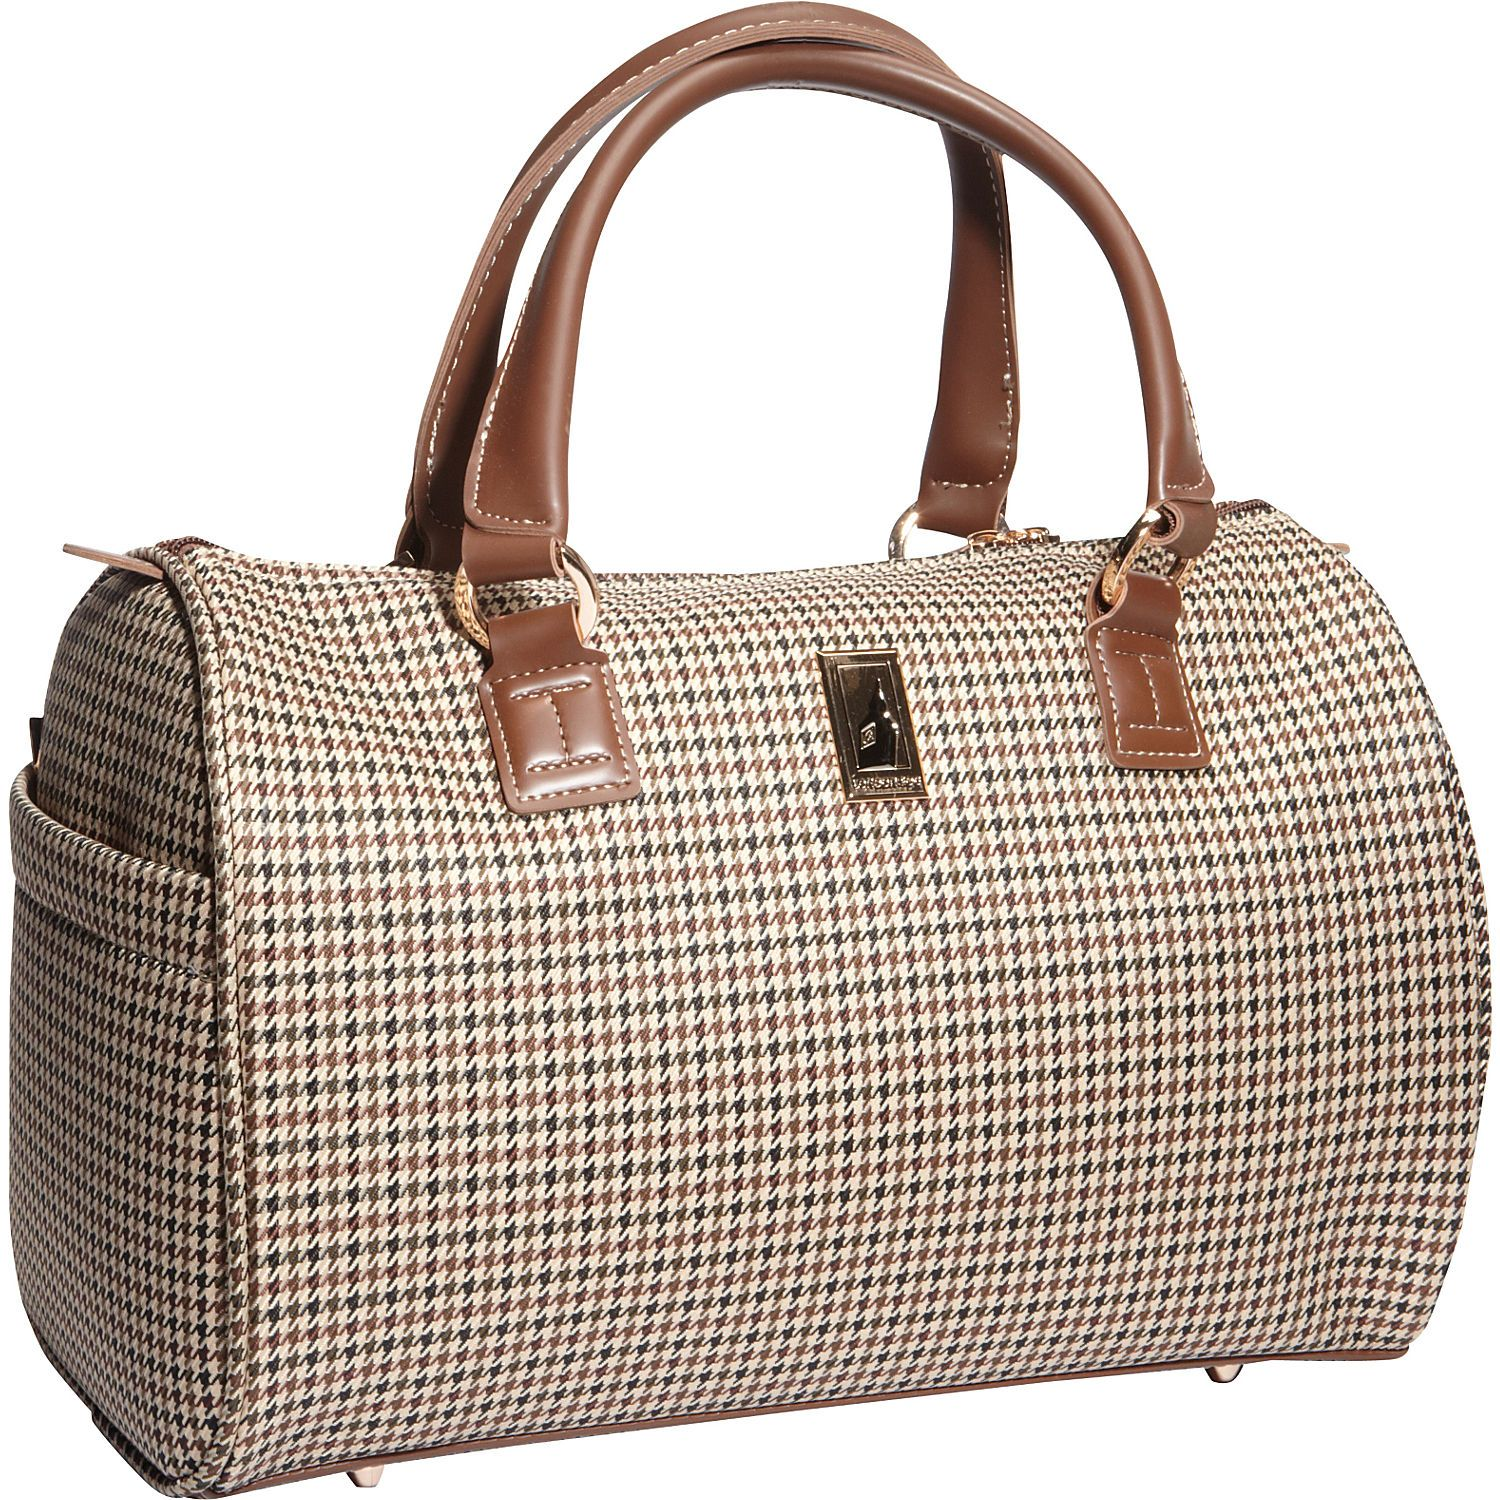 """Buy the London Fog Chelsea Lites 16"""" Satchel Tote at eBags - Travel for business or pleasure with your in-flight essentials packed inside this chic satchel from"""